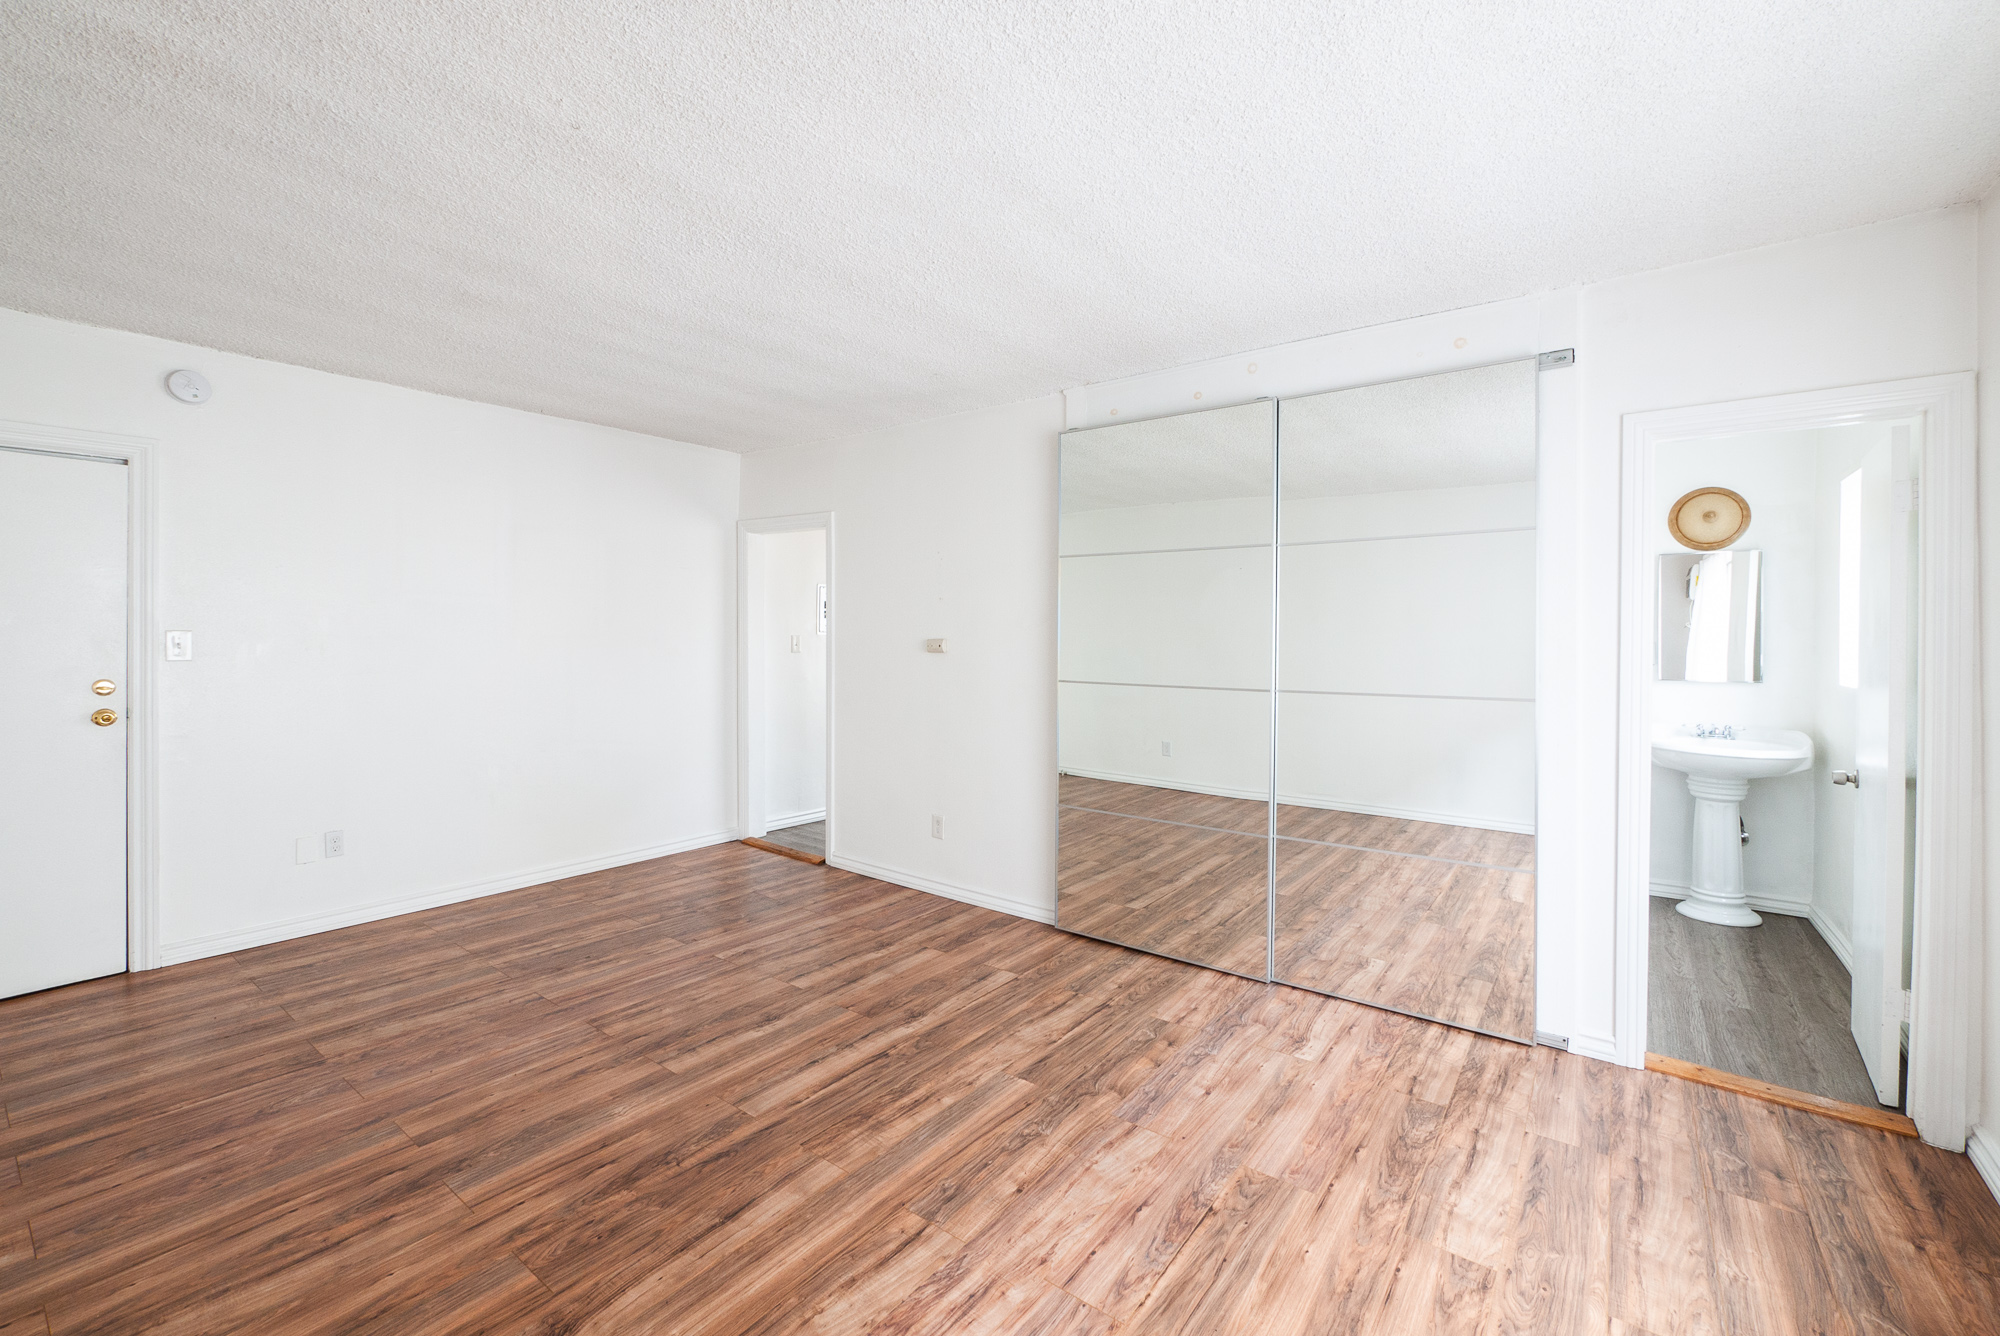 $500 MOVE-IN SPECIAL - SPACIOUS STUDIO IN FRANKLIN VILLAGE- PARKING AVAILABLE FOR $99/MO